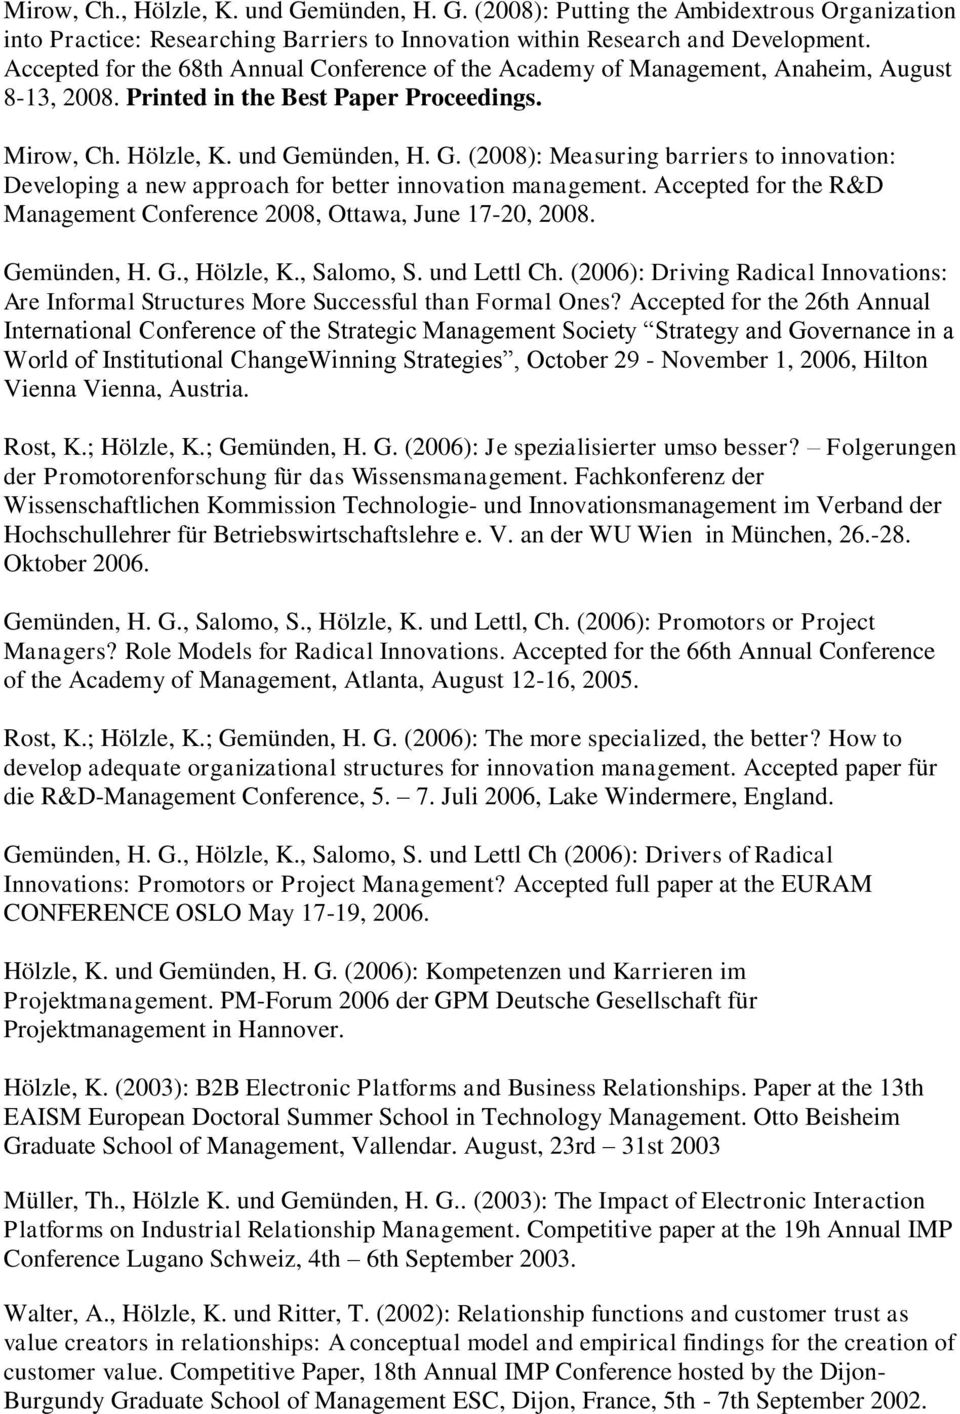 münden, H. G. (2008): Measuring barriers to innovation: Developing a new approach for better innovation management. Accepted for the R&D Management Conference 2008, Ottawa, June 17-20, 2008.